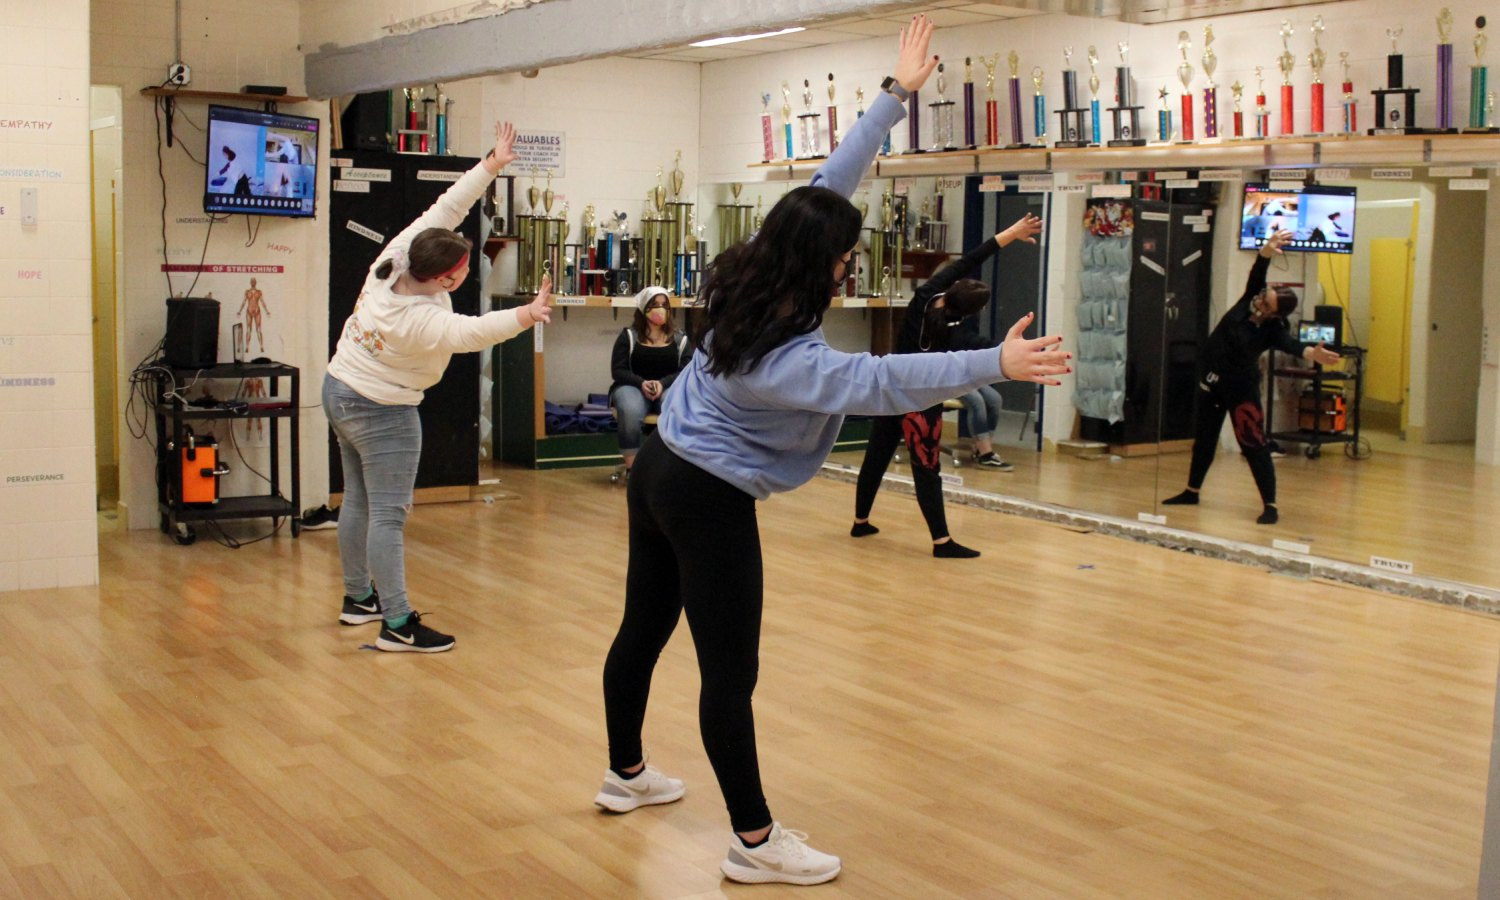 Students participate in class in the dance studio at CHS